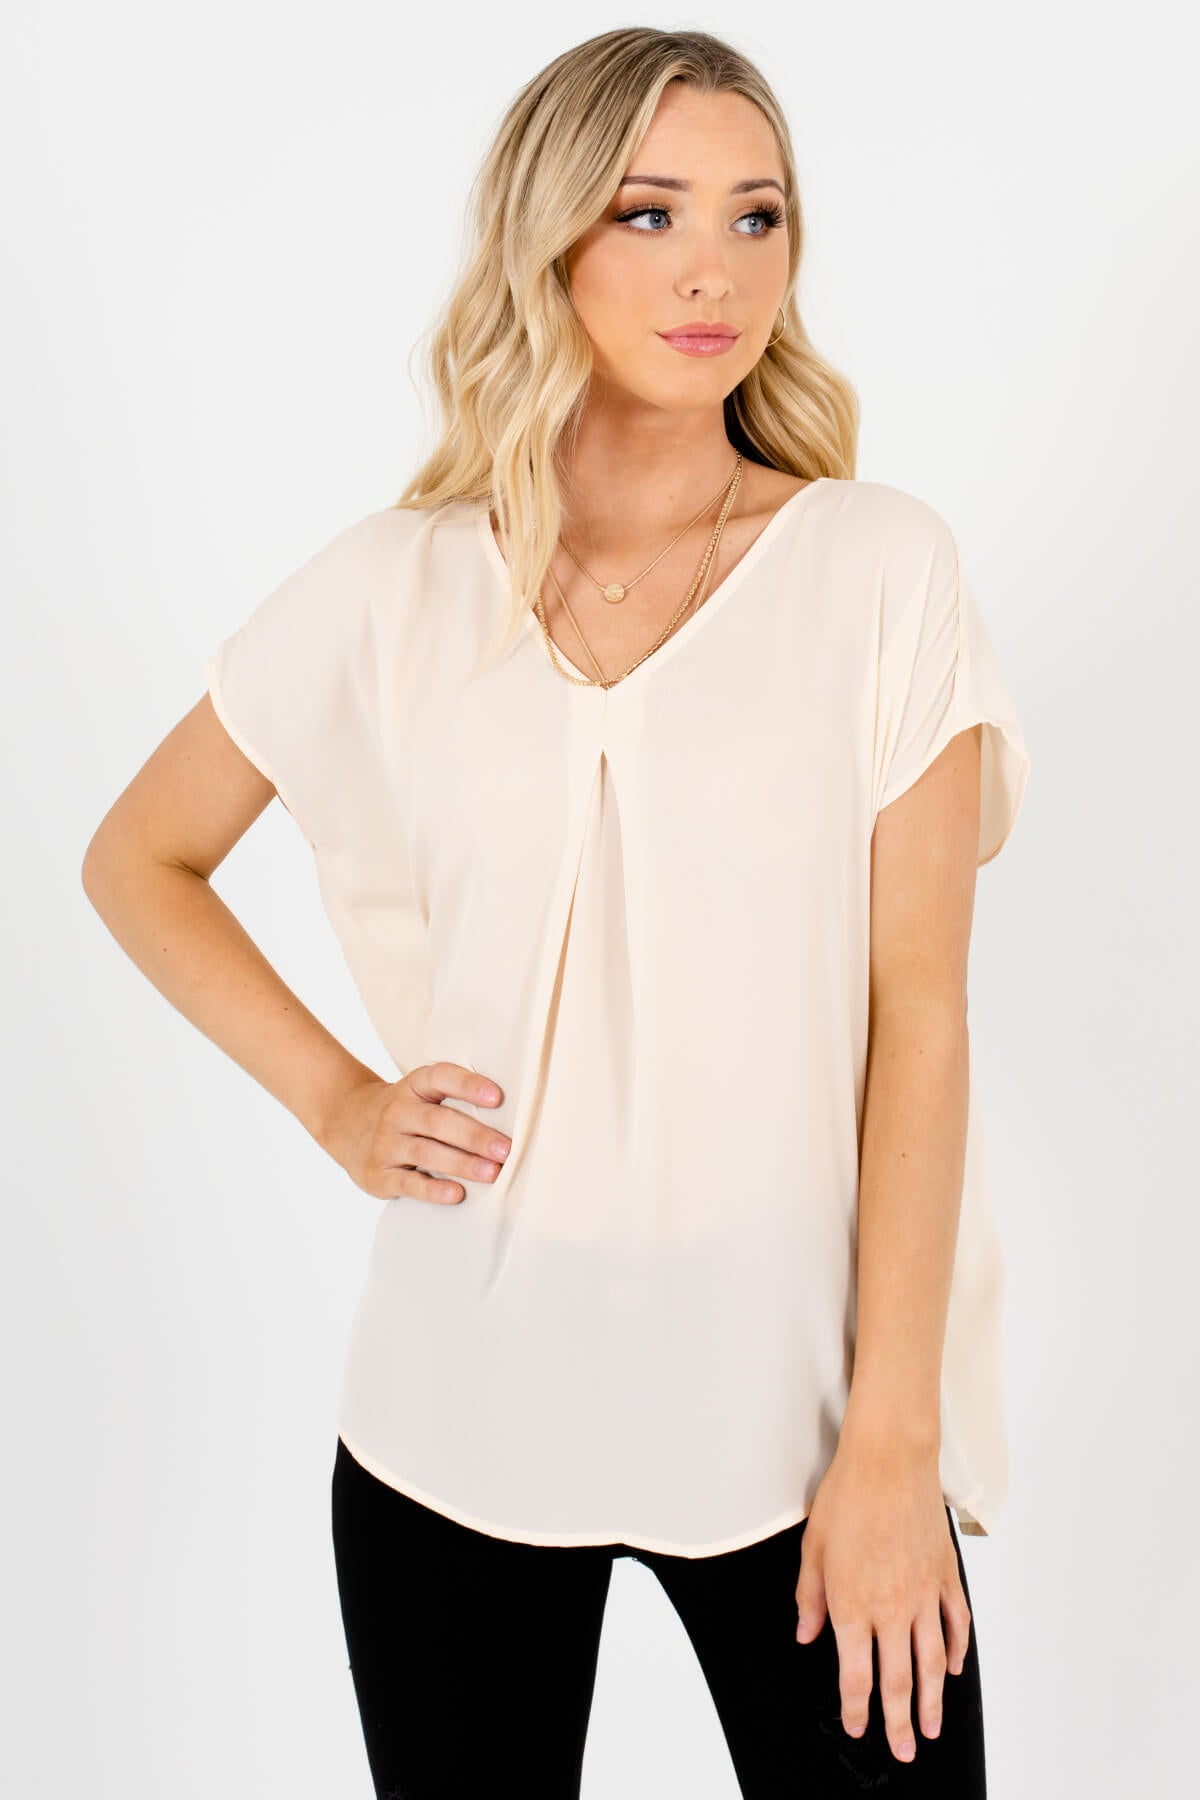 Cream Lightweight High-Quality Boutique Blouses for Women